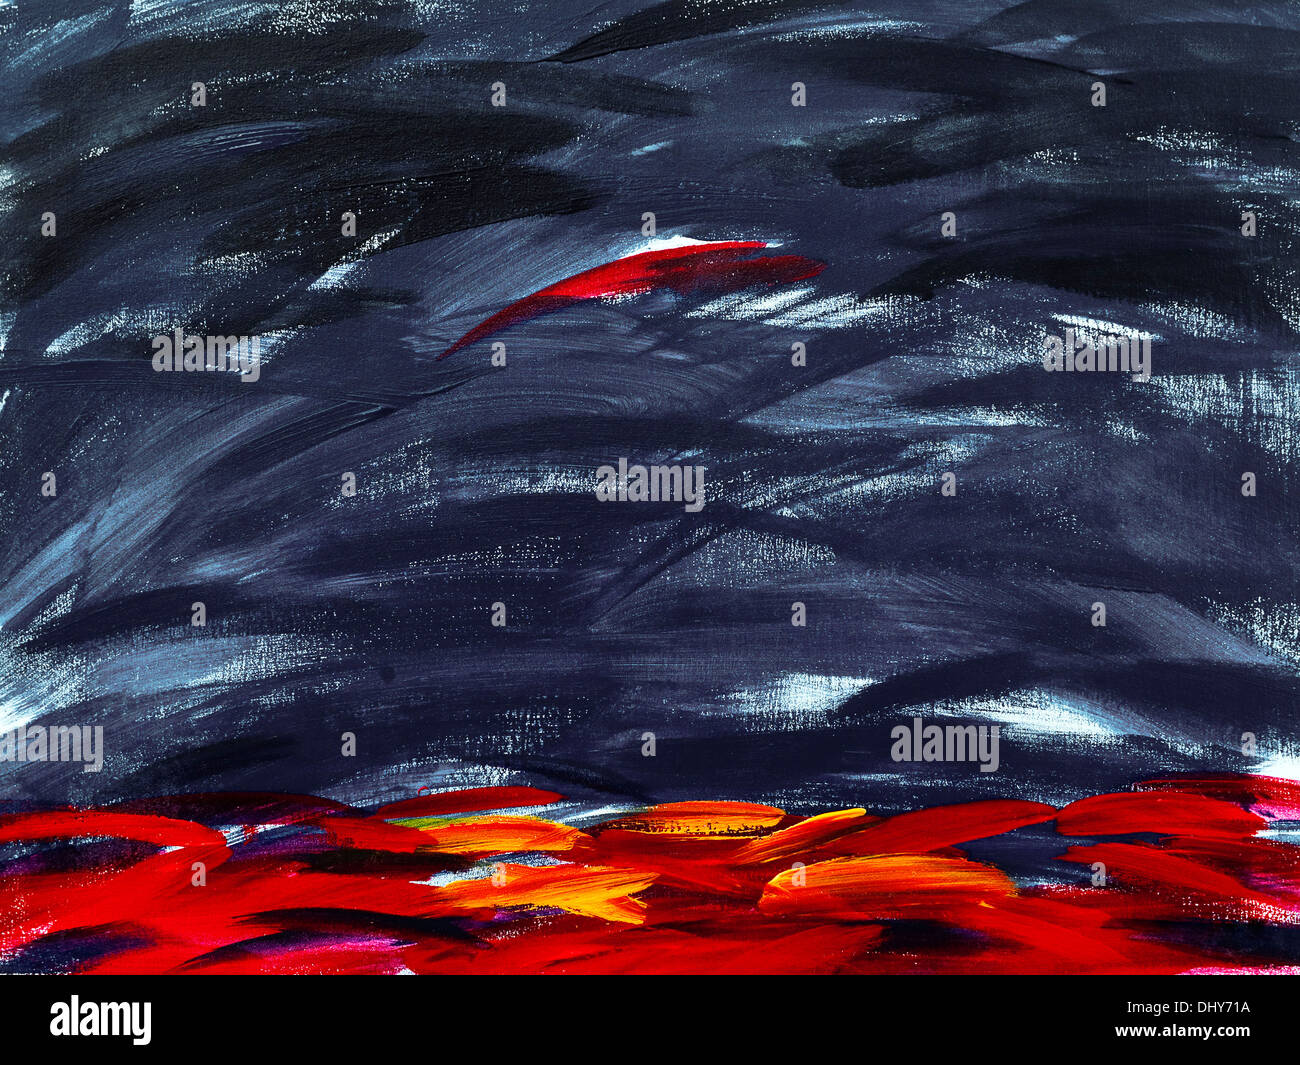 Modern abstract acrylic painting on canvas, by Ed Buziak. - Stock Image